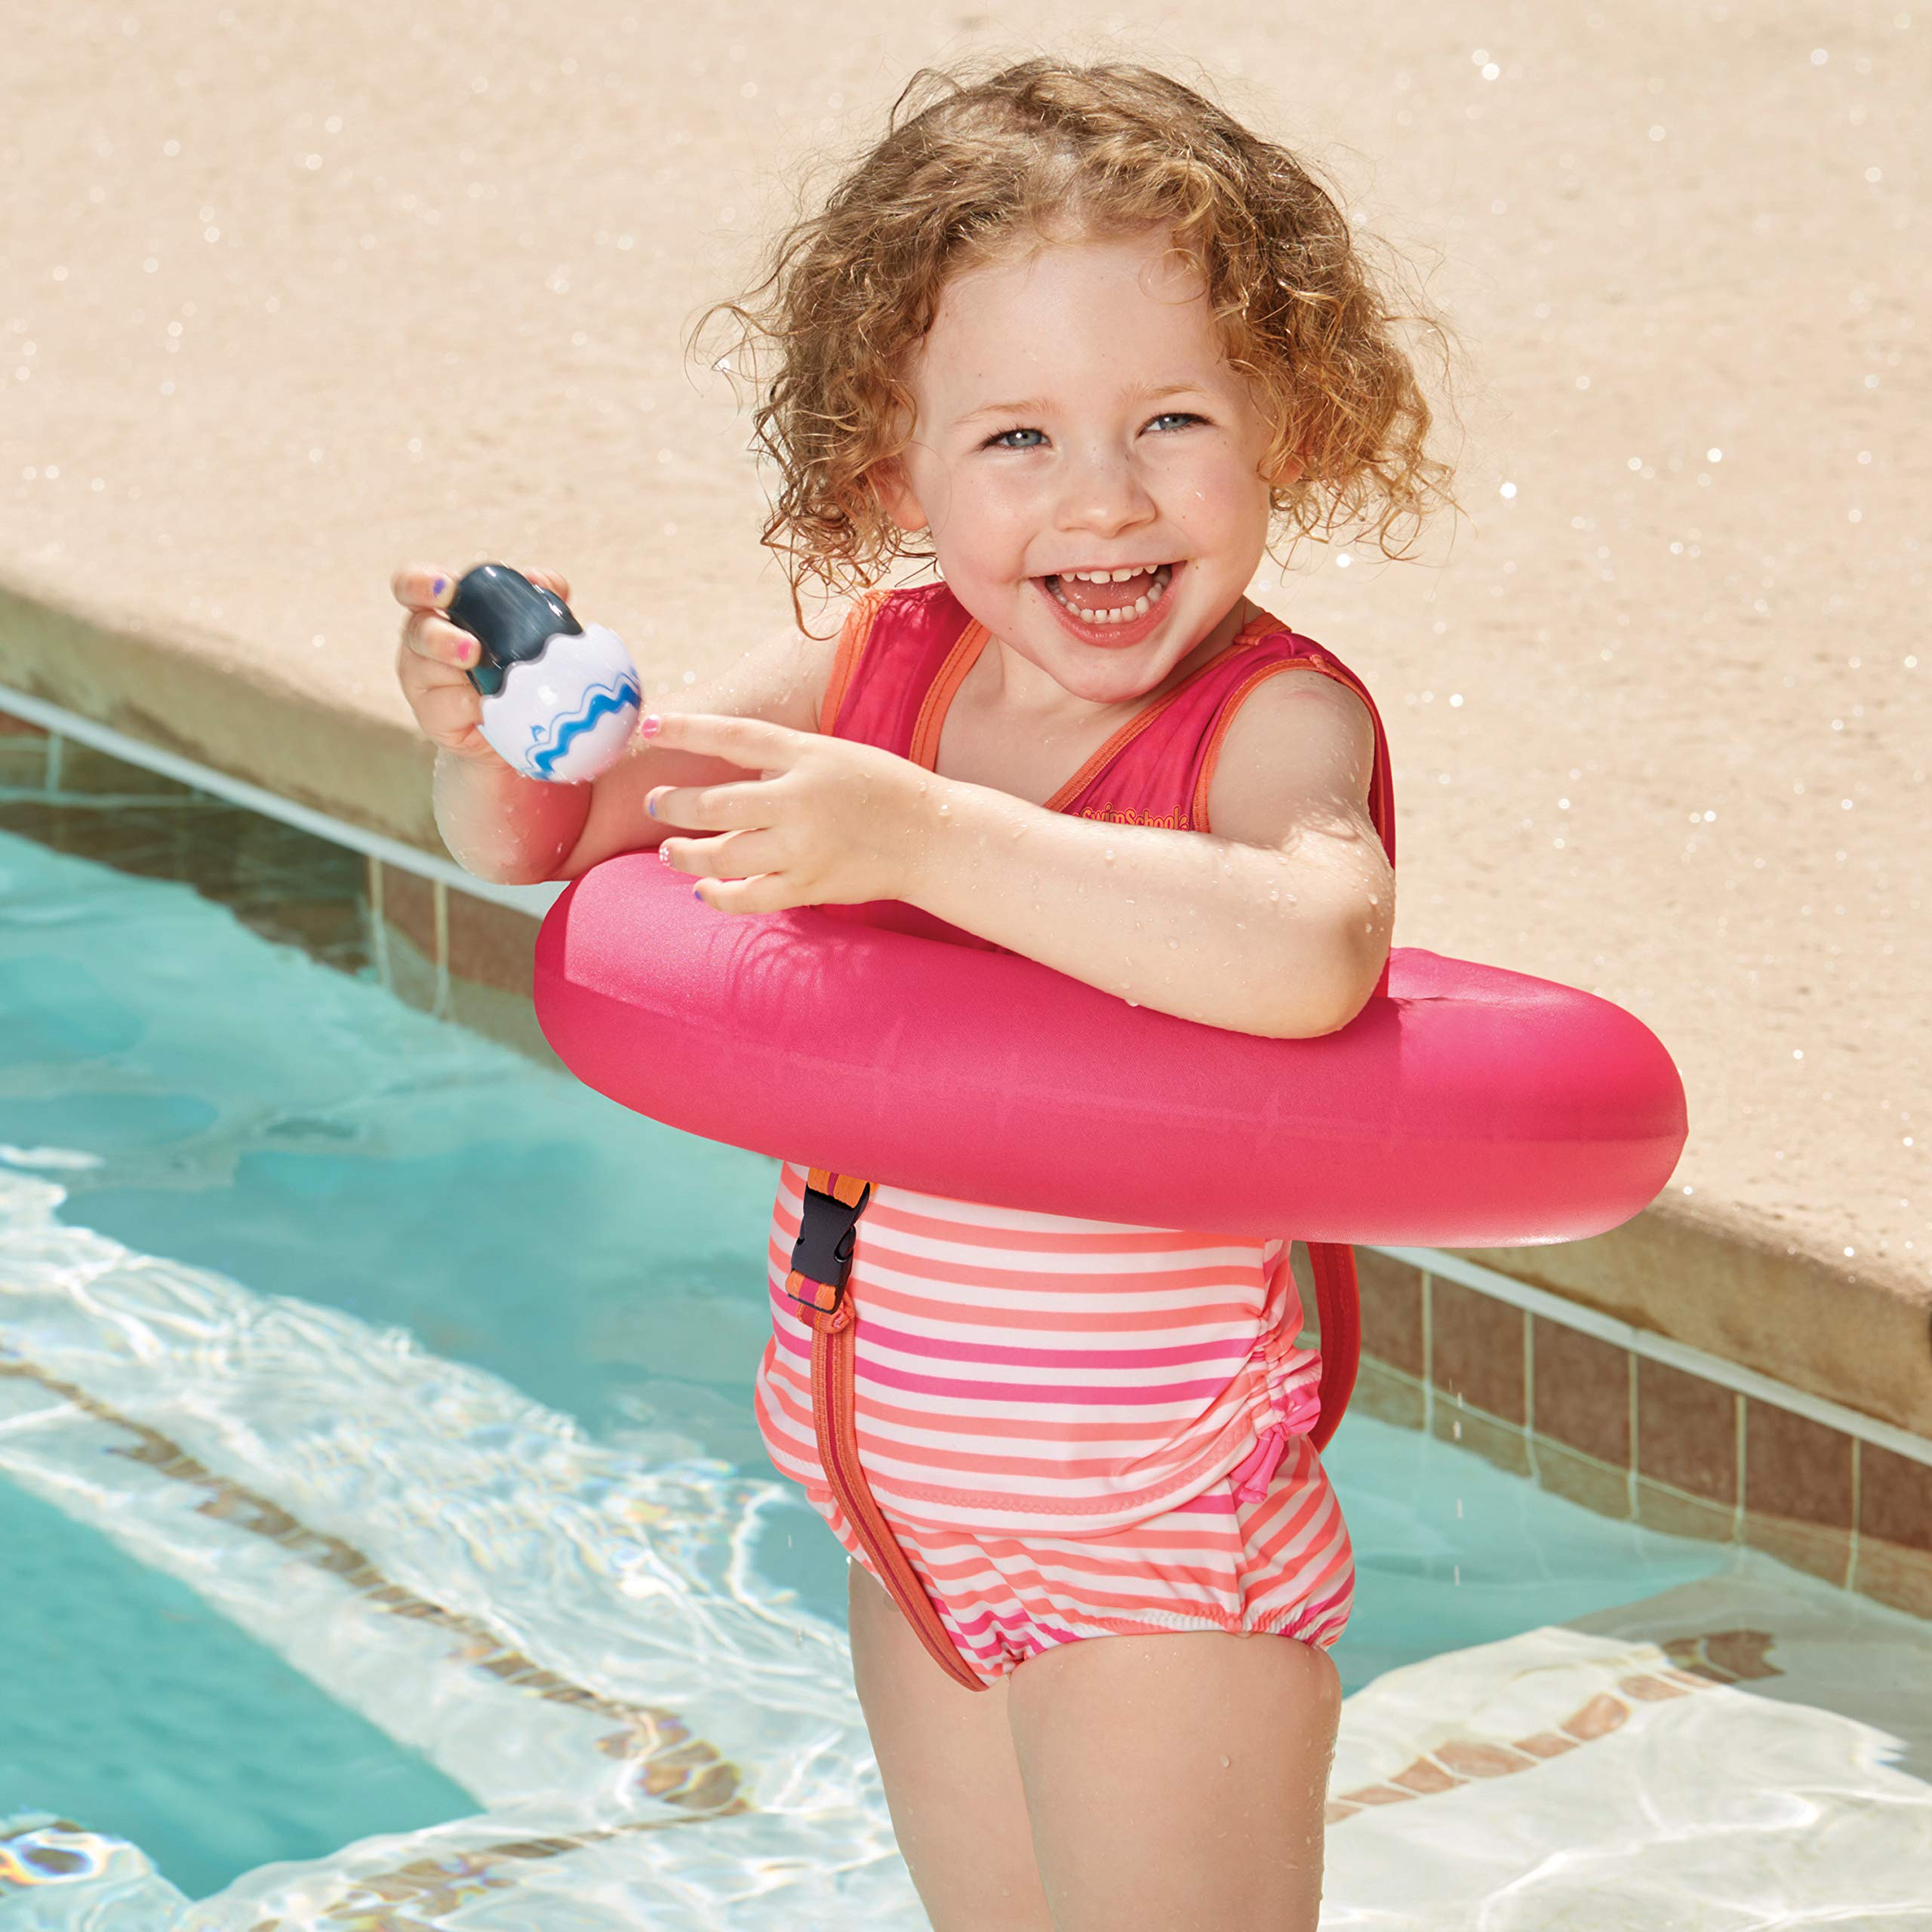 SwimSchool Deluxe TOT Swim Trainer Vest, Heavy Duty, Inflatable Tube with Adjustable Safety Strap, 2-4 Years, Raspberry/Pink by SwimSchool (Image #2)